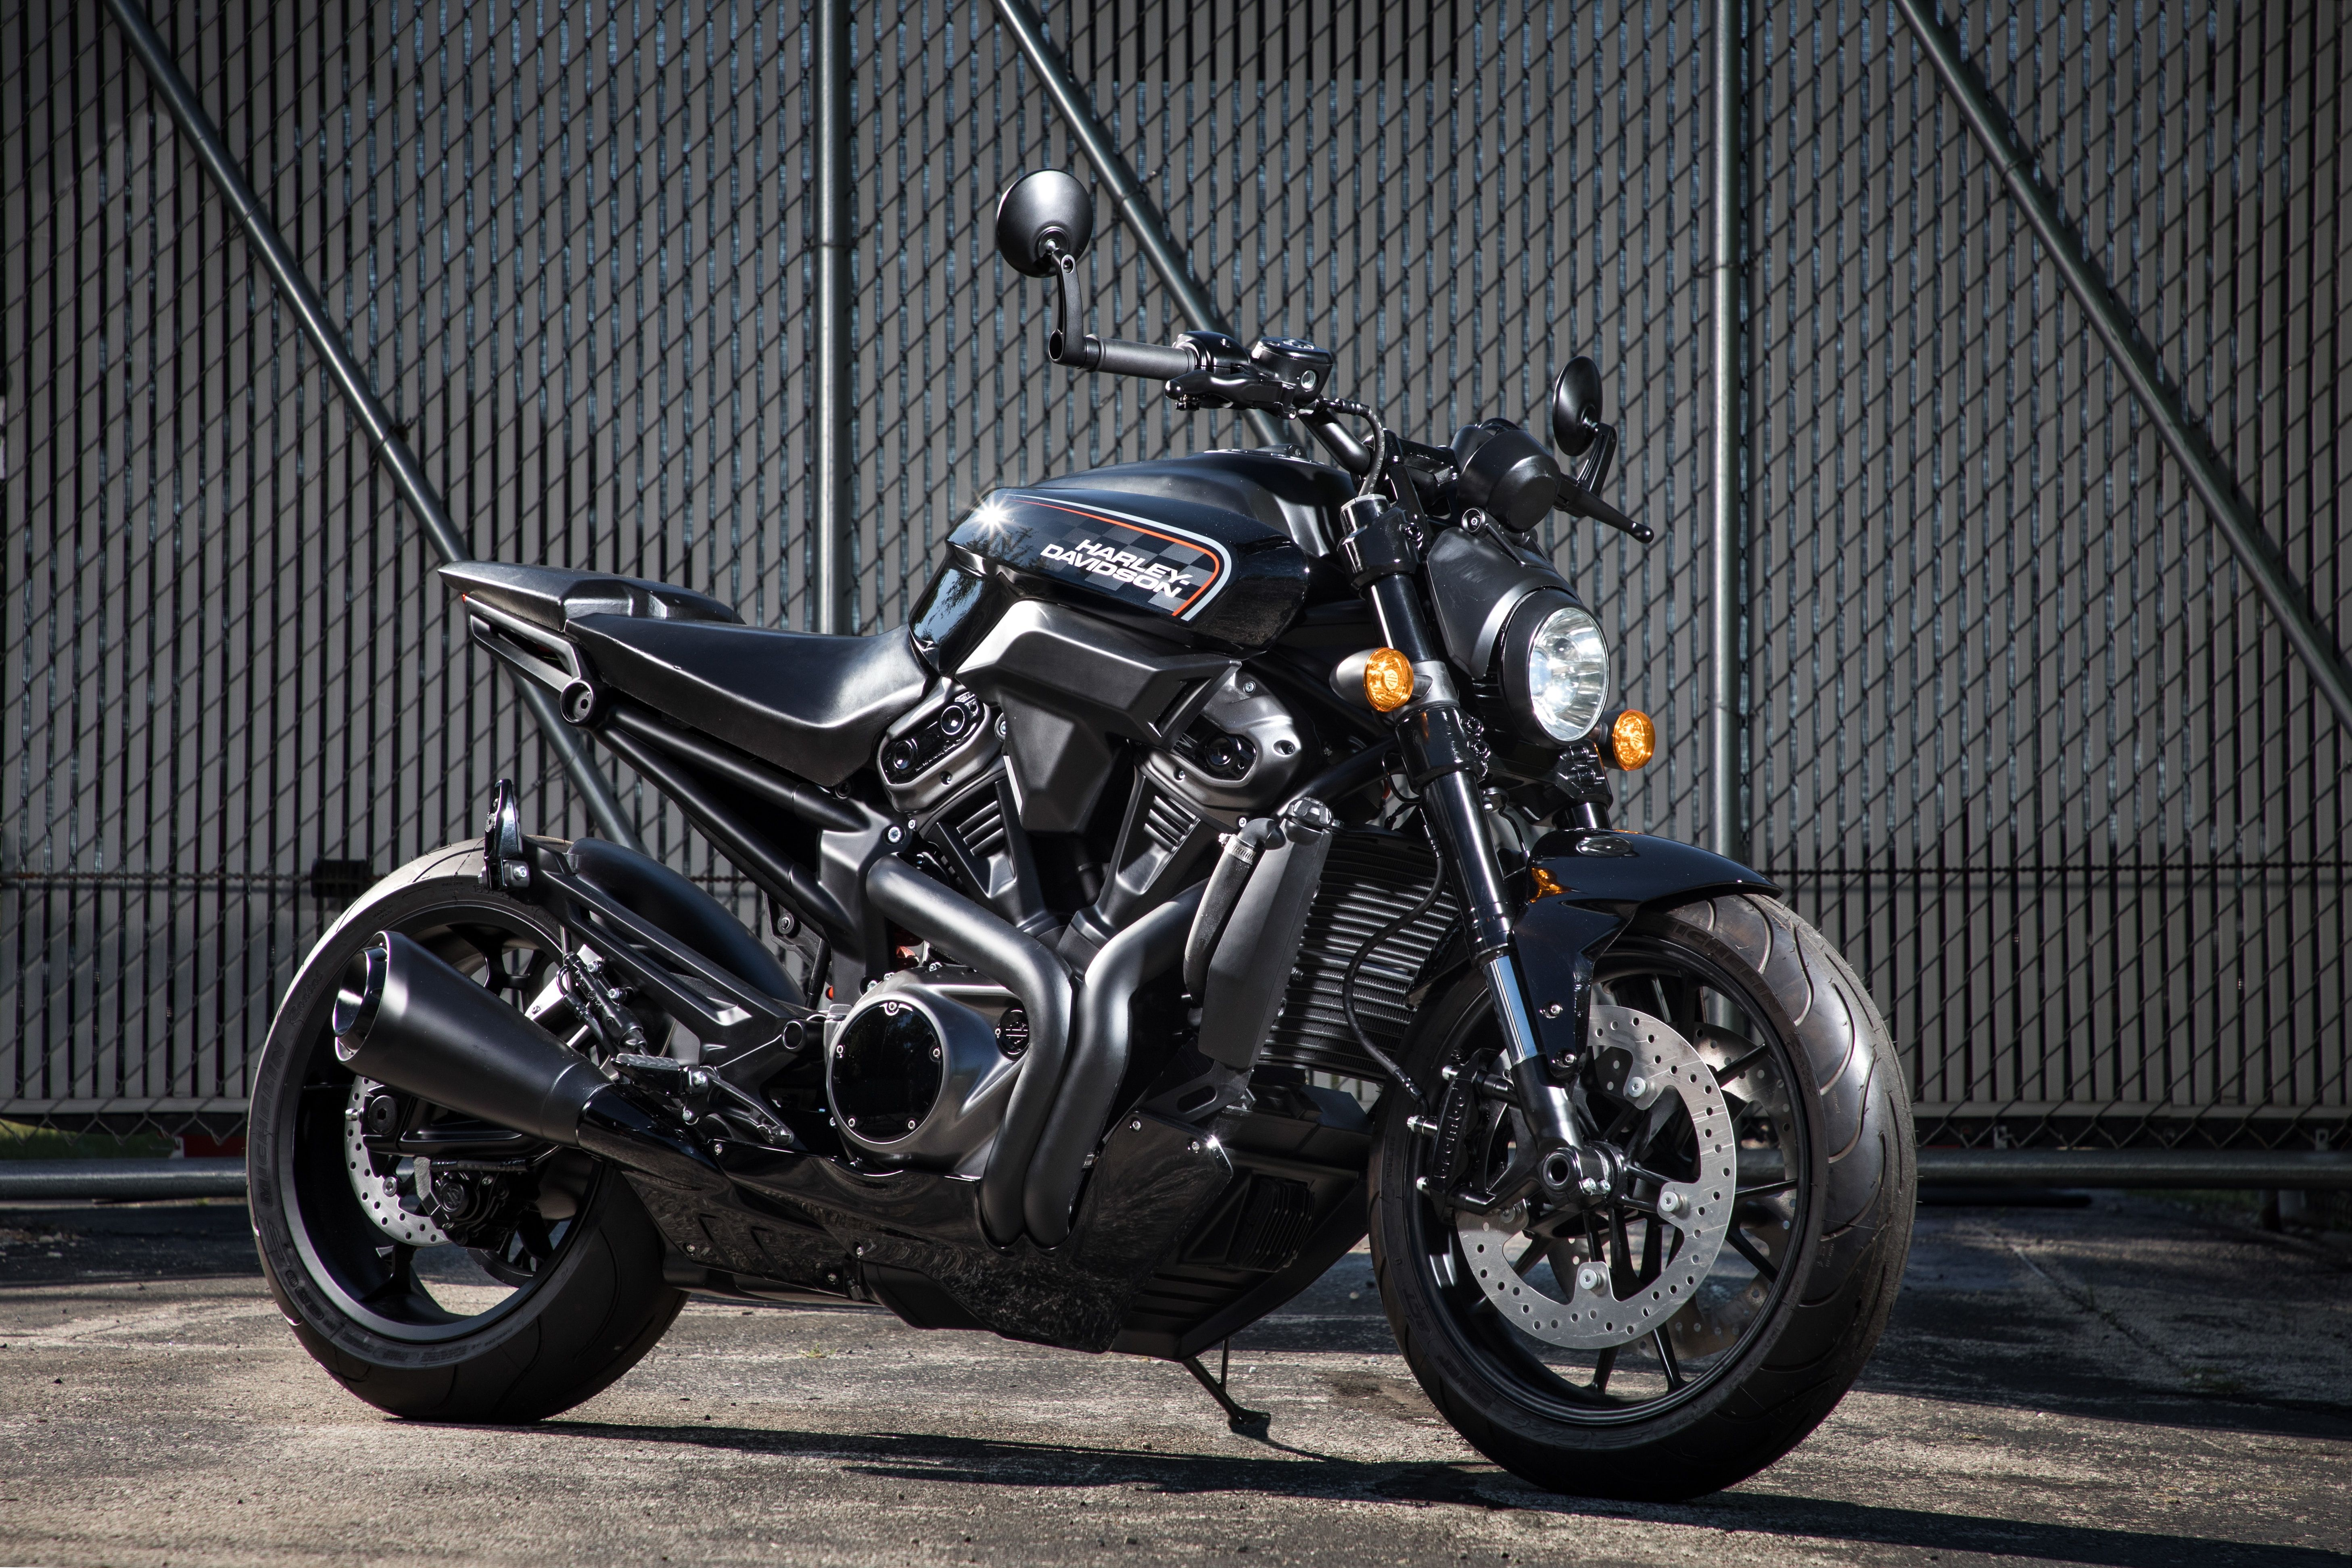 Cheap Motorcycle insurance quotes. 5209175295 Street